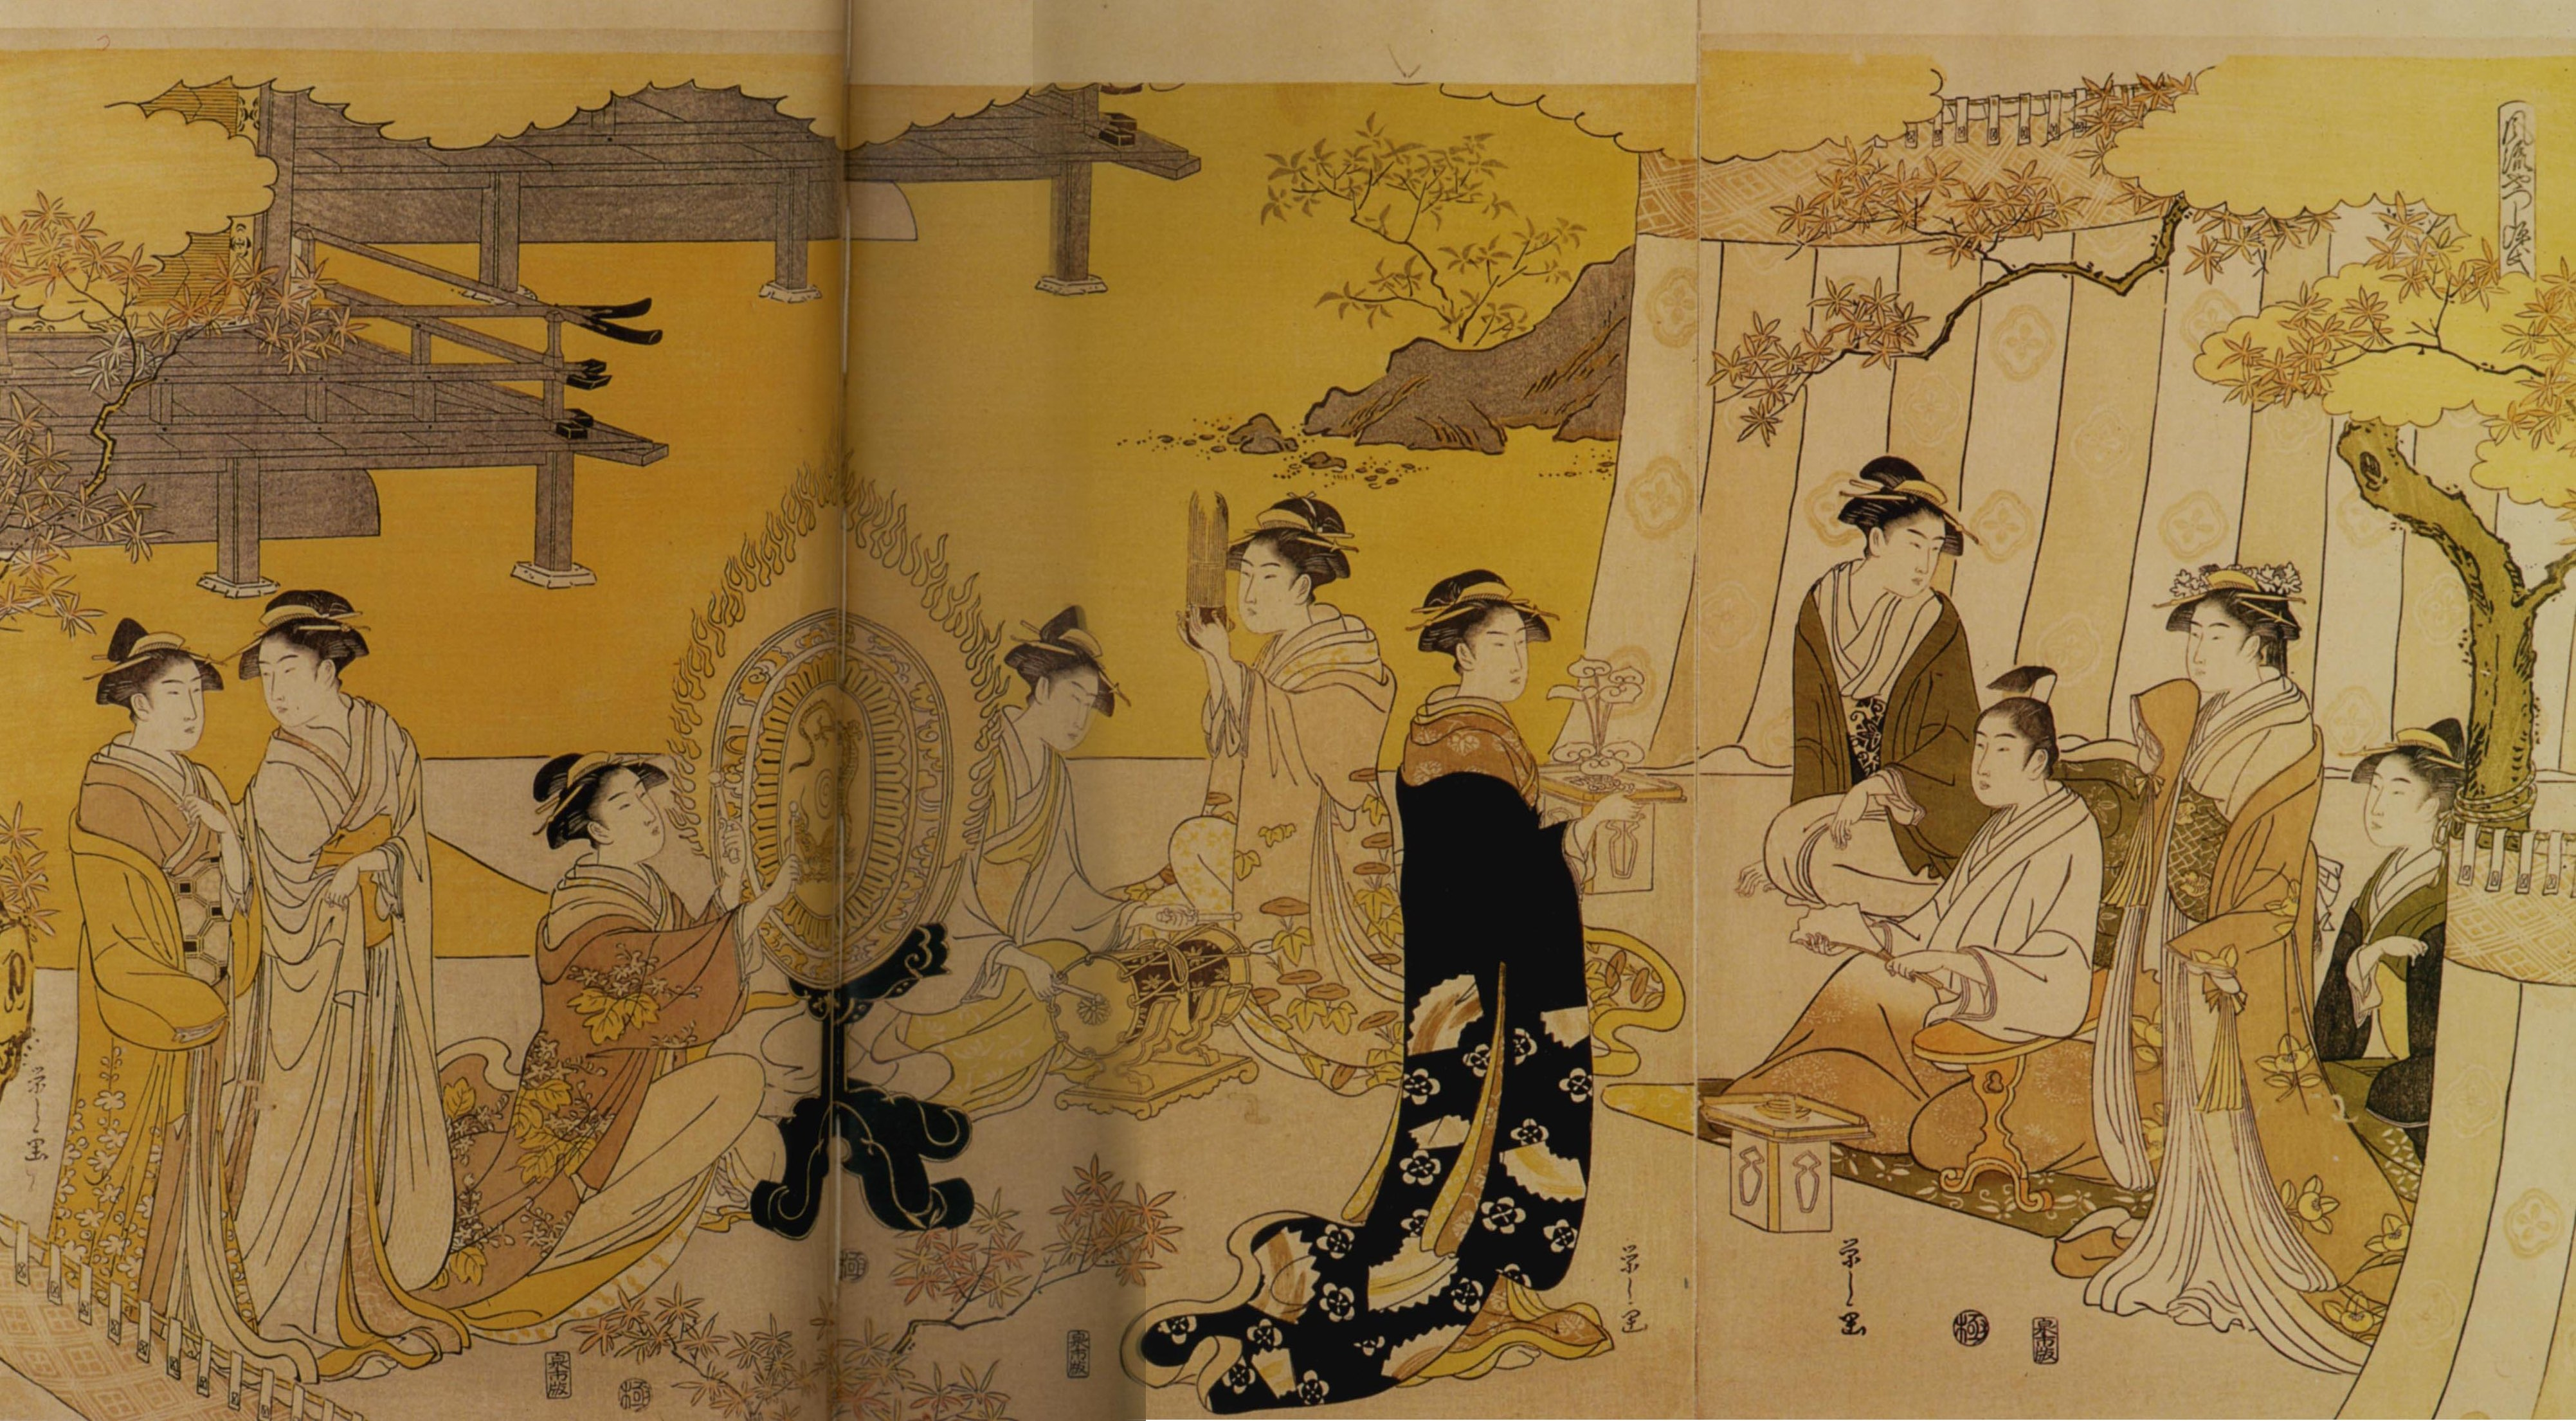 japanese art shinto vs buddhism It is so ingrained in the japanese culture, rituals, art the reason for this is that both japanese buddhism and shinto are part of a cultural heritage.